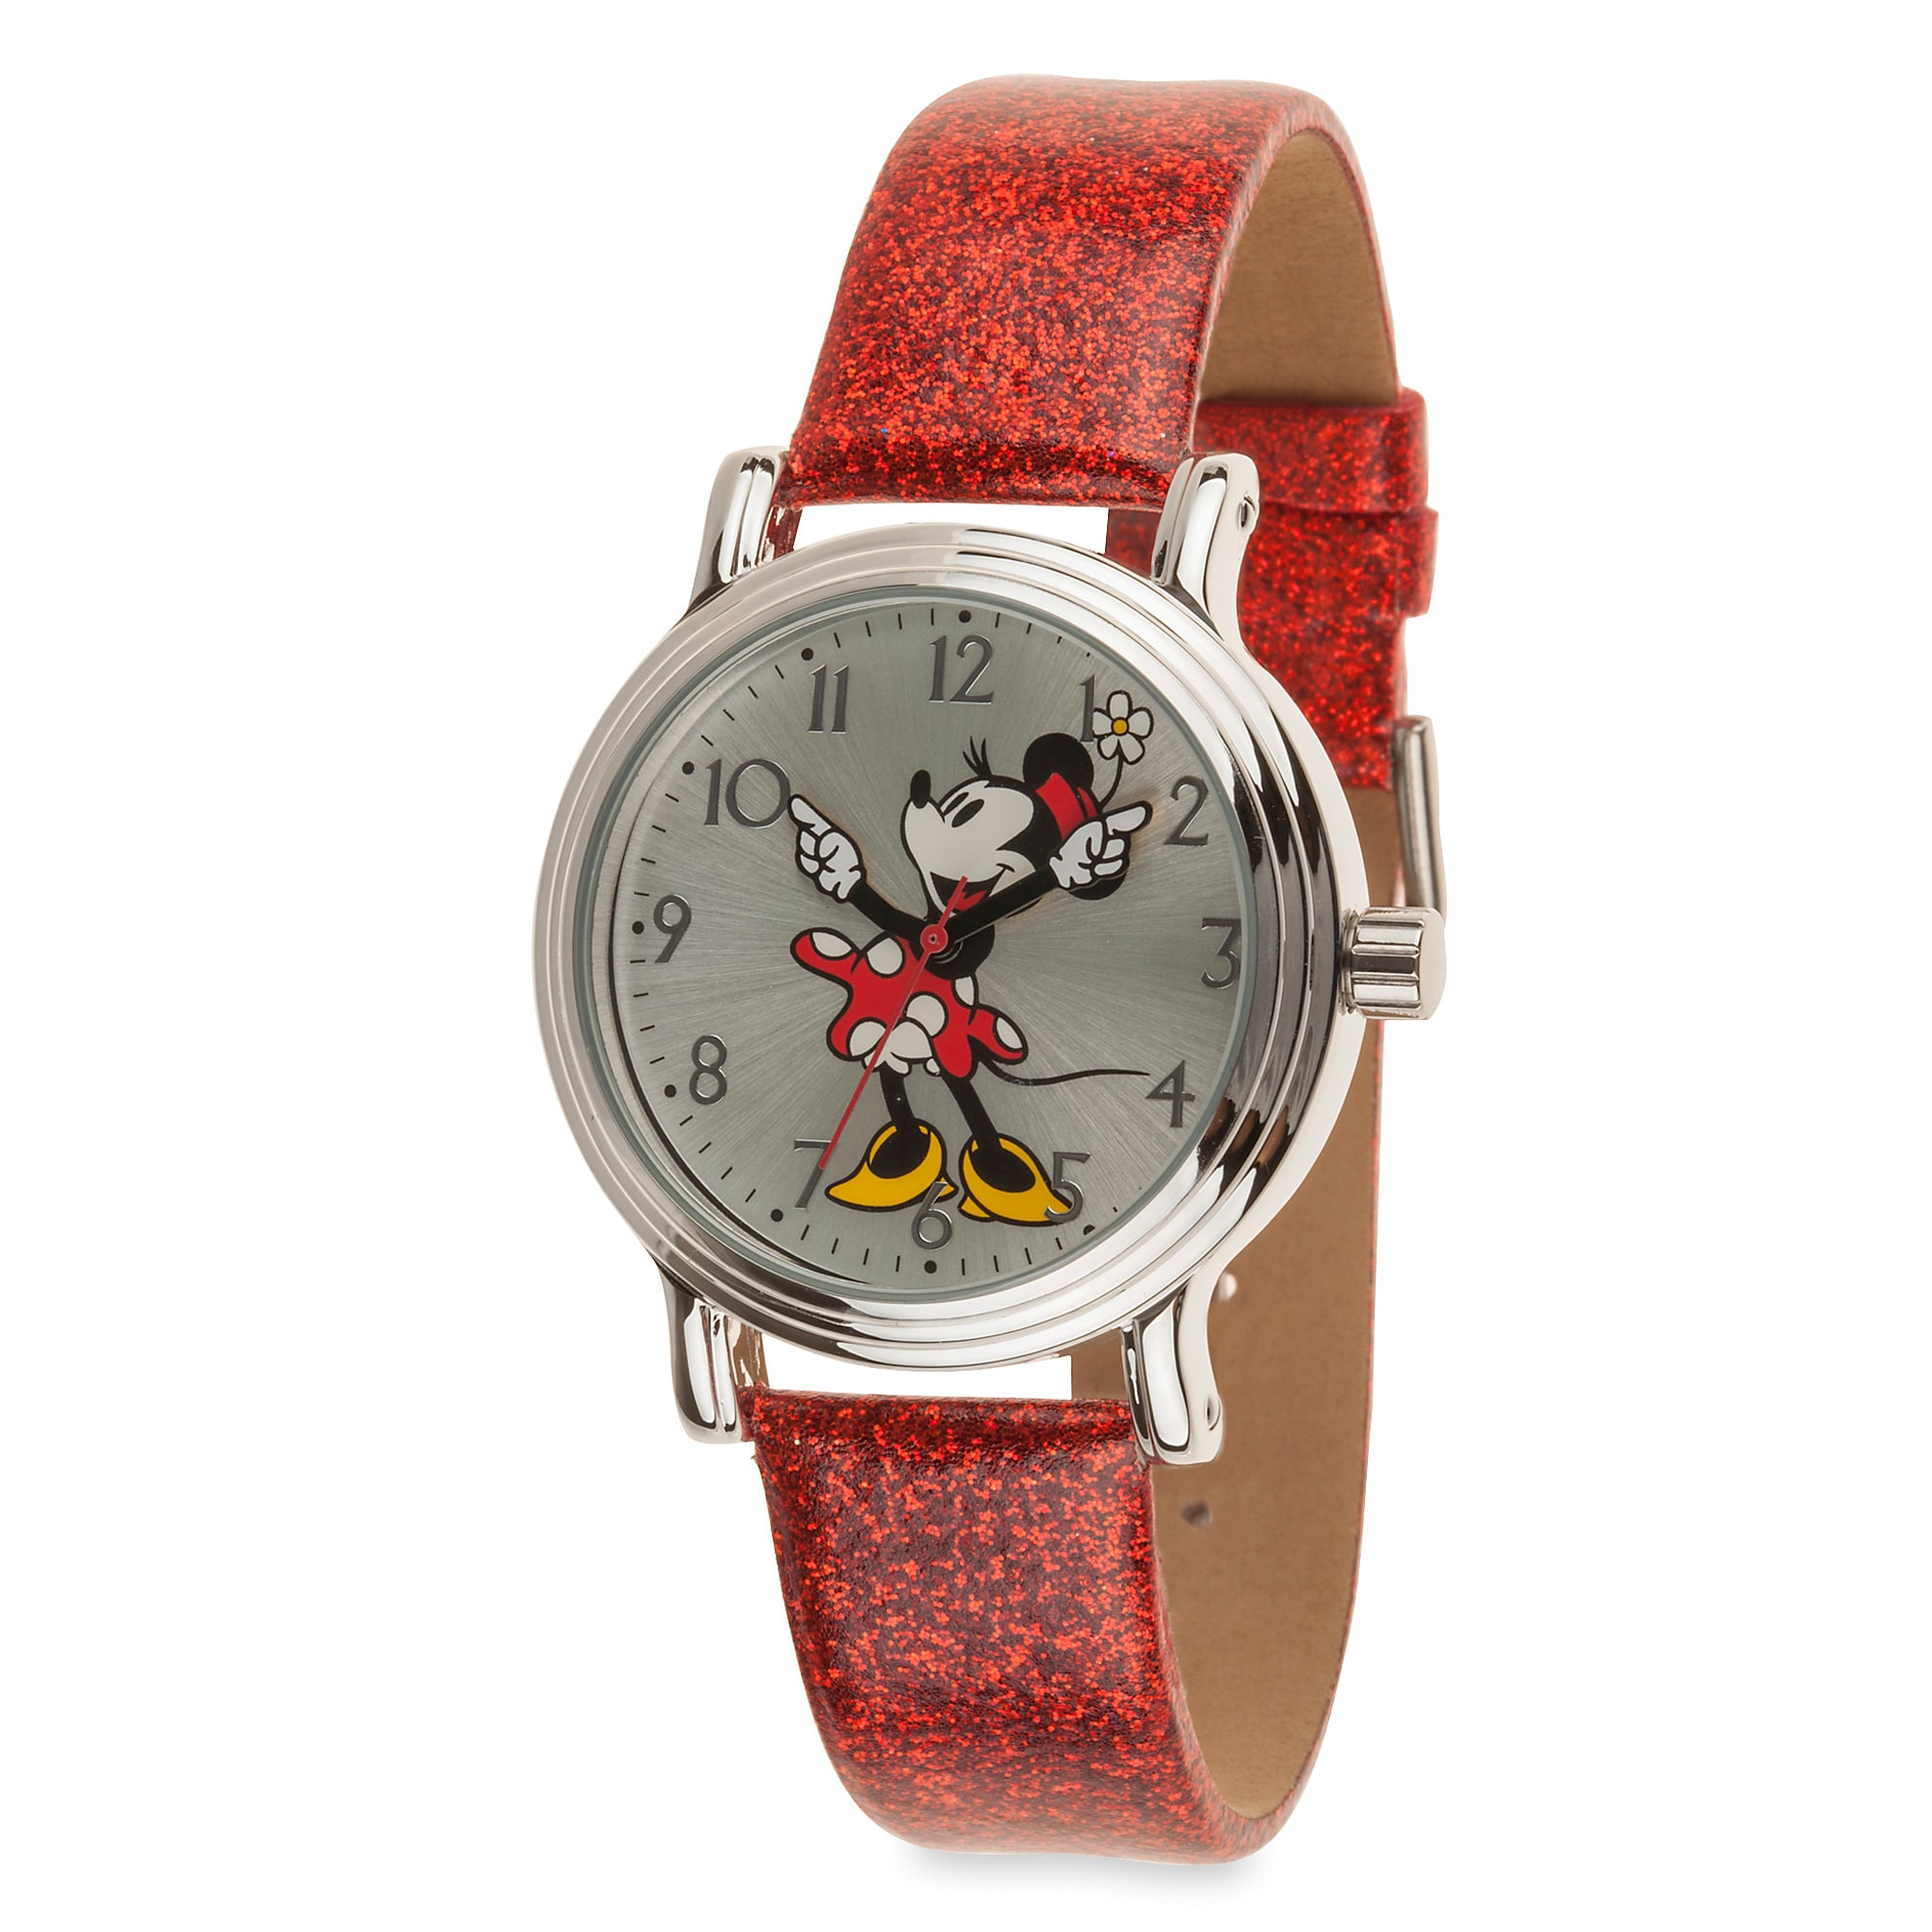 hut treehut products ebony leather tree wood watch redwood all red watches